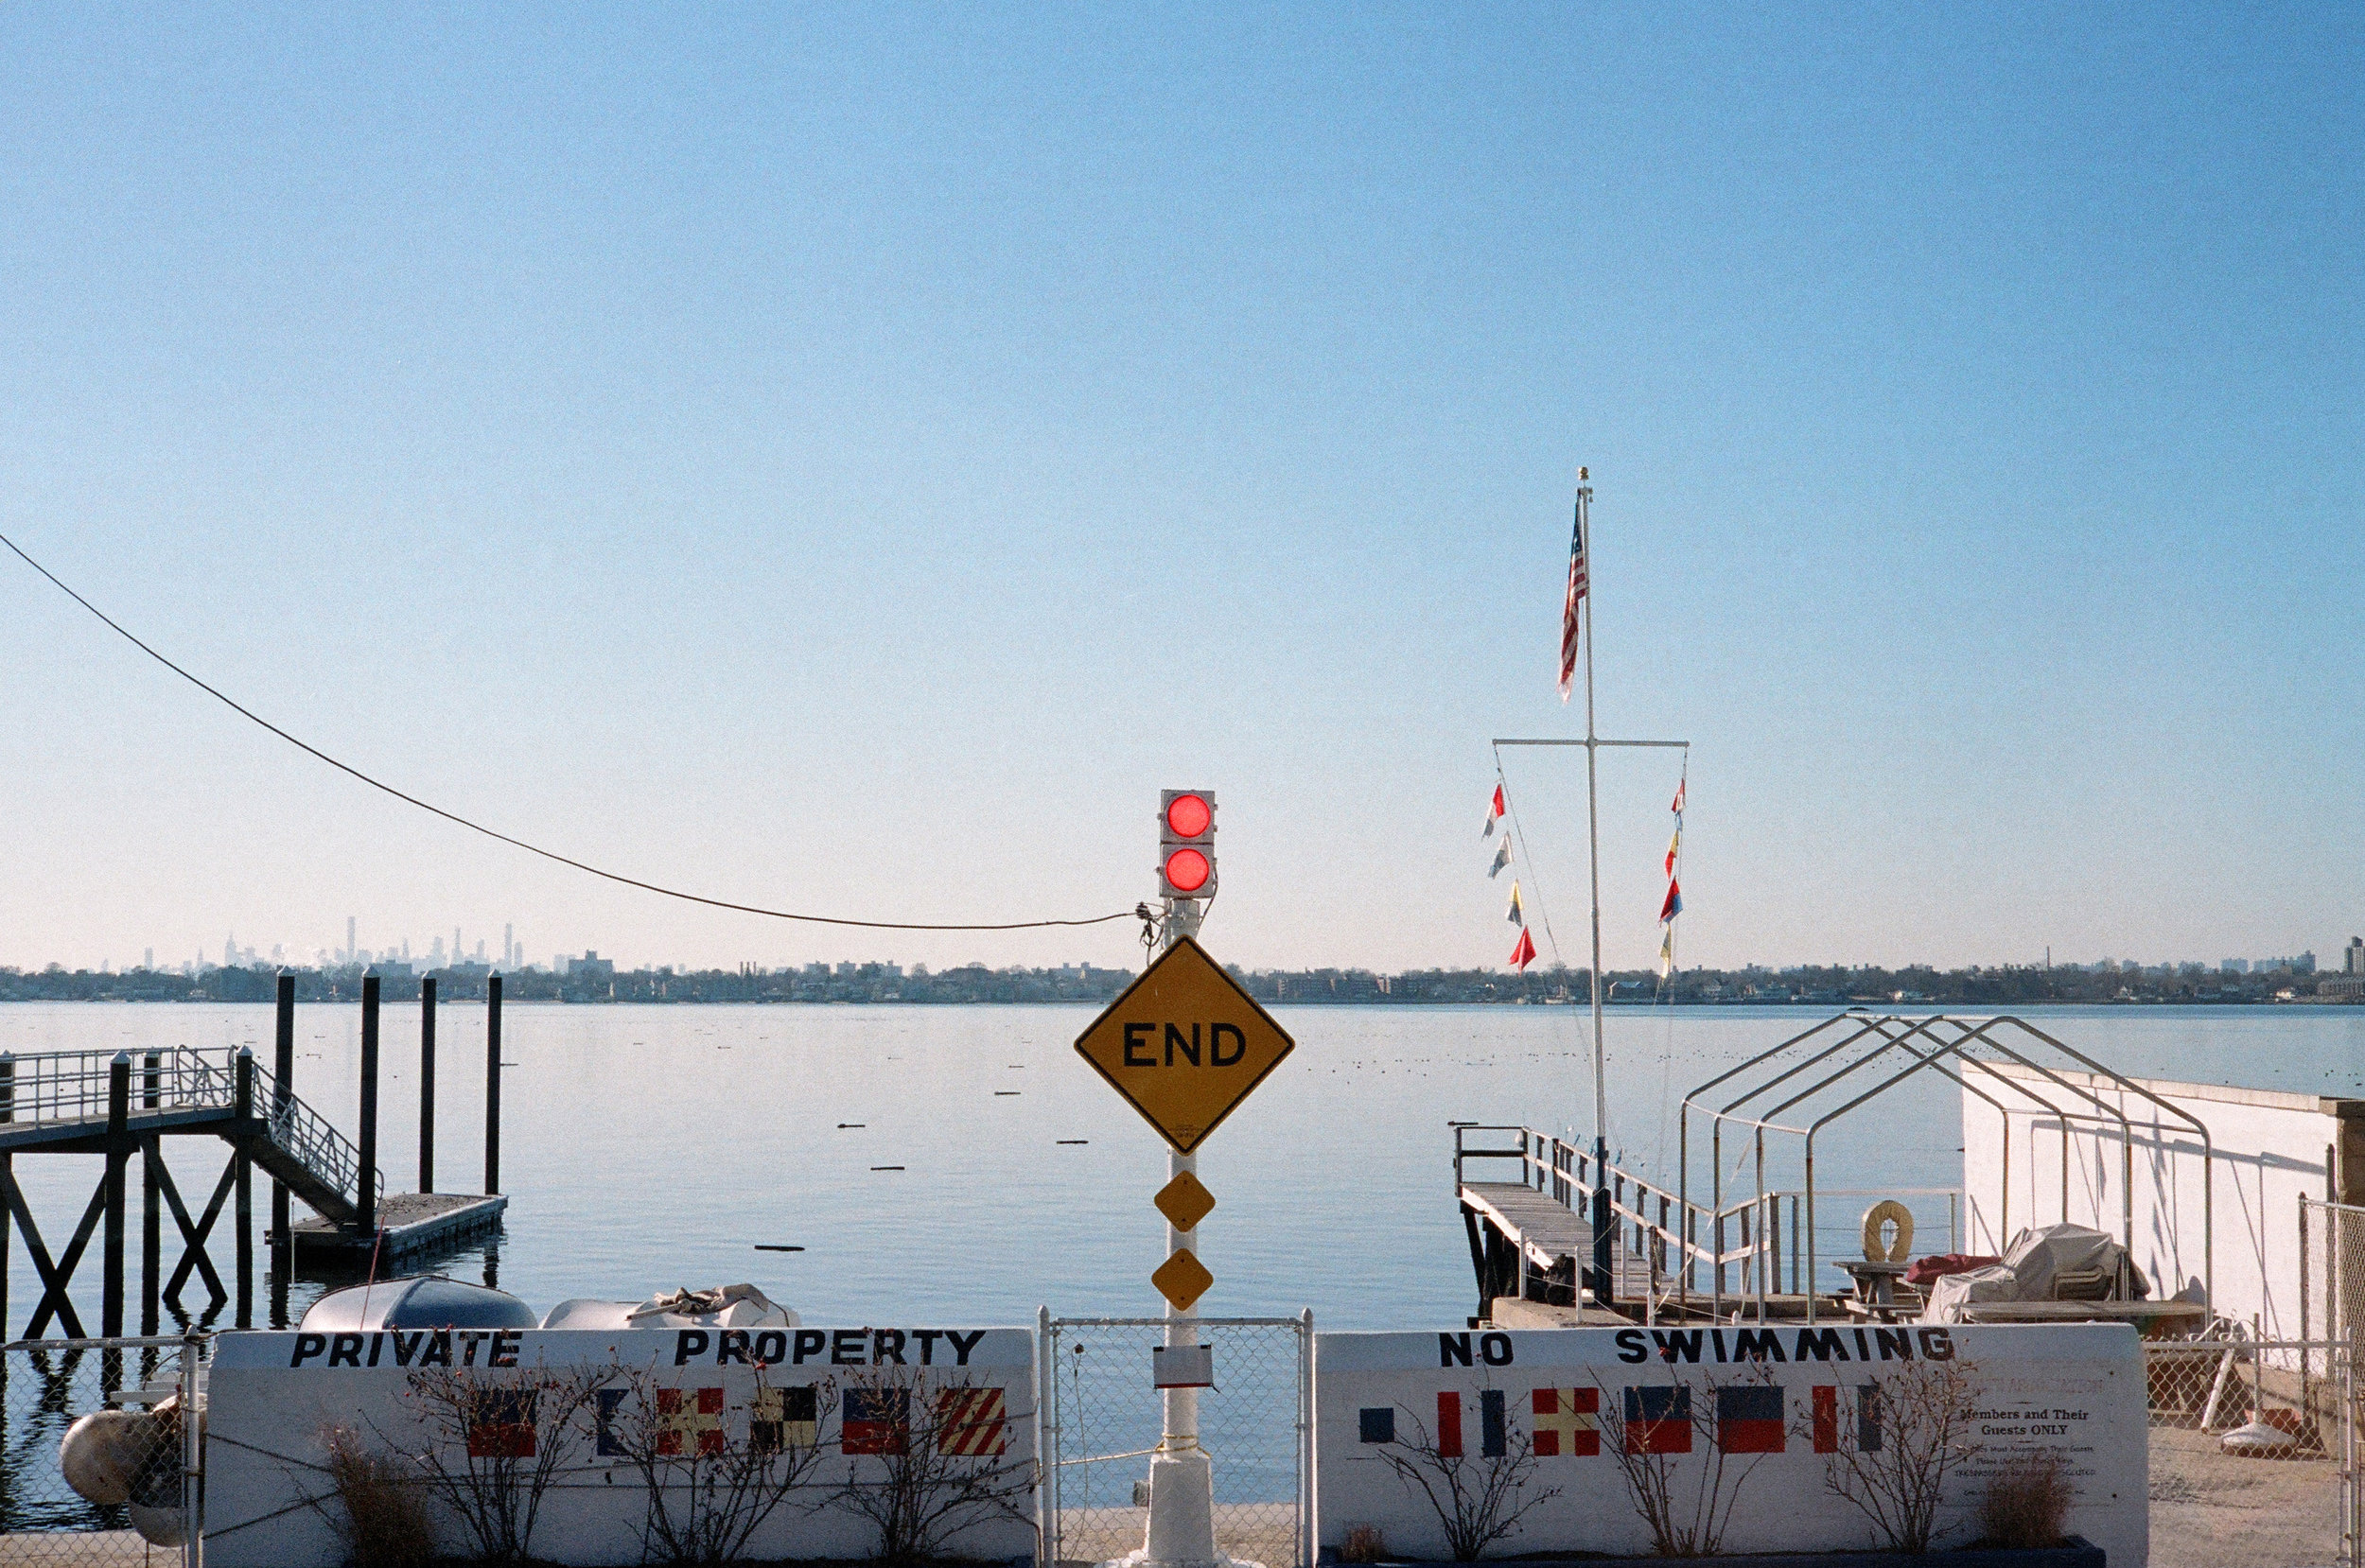 City Island, New York : Kodak Portra 400